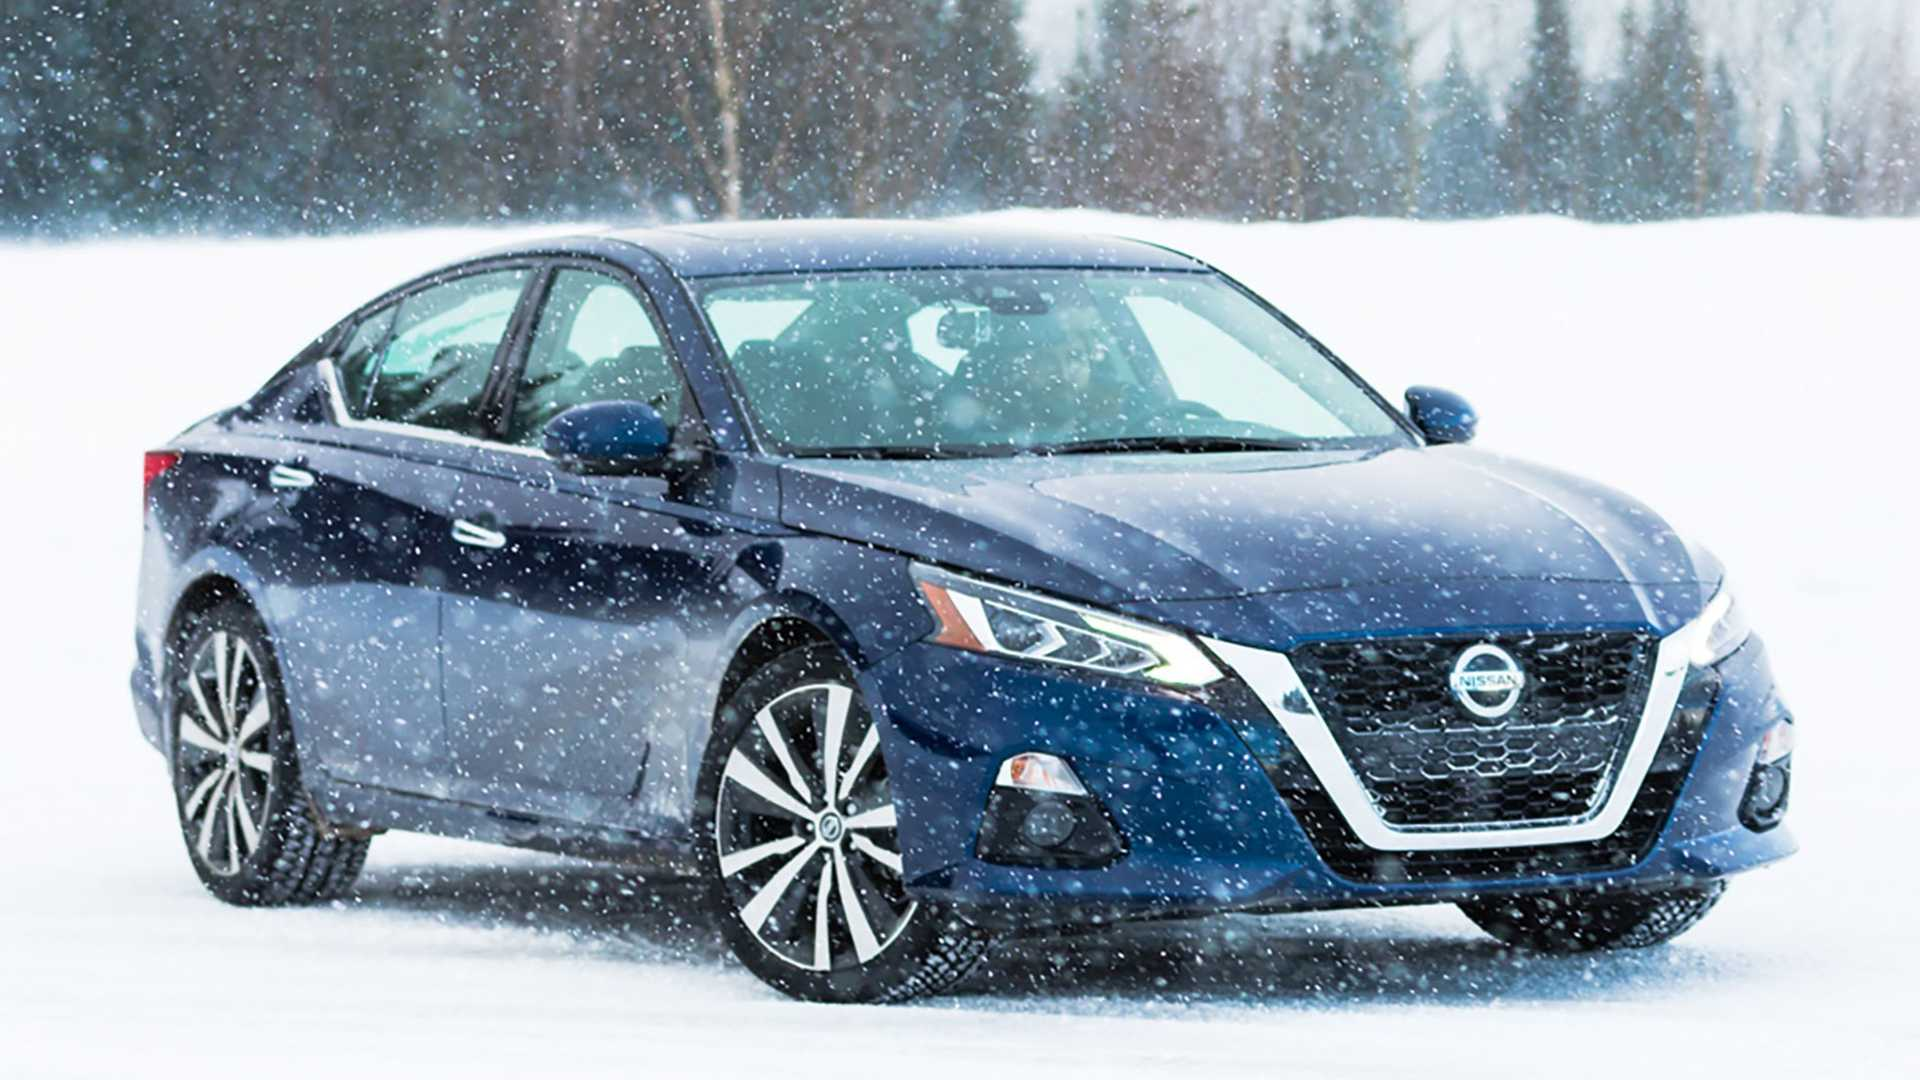 2019 Nissan Altima AWD First Drive: Your All-Weather Nissan